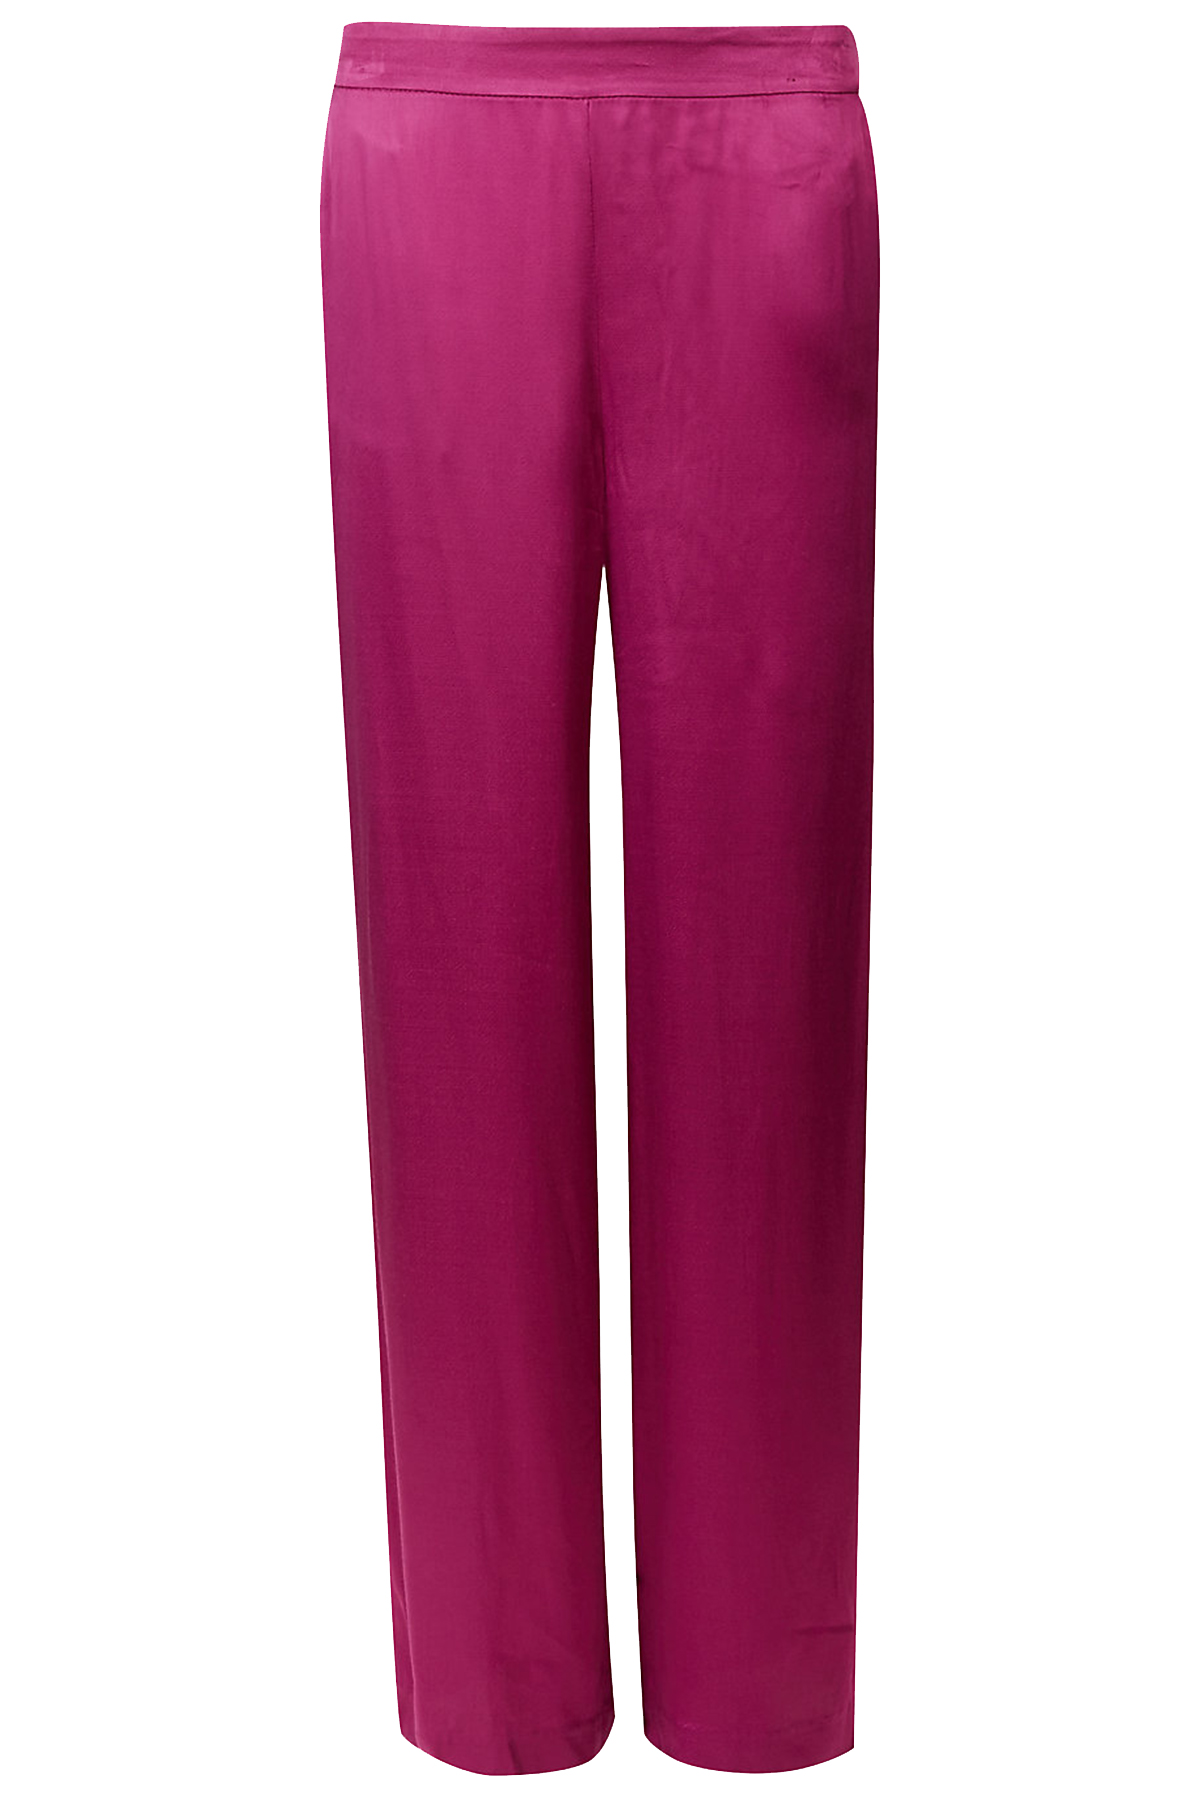 Click to buy Marks & Spencer pink wide-leg trousers